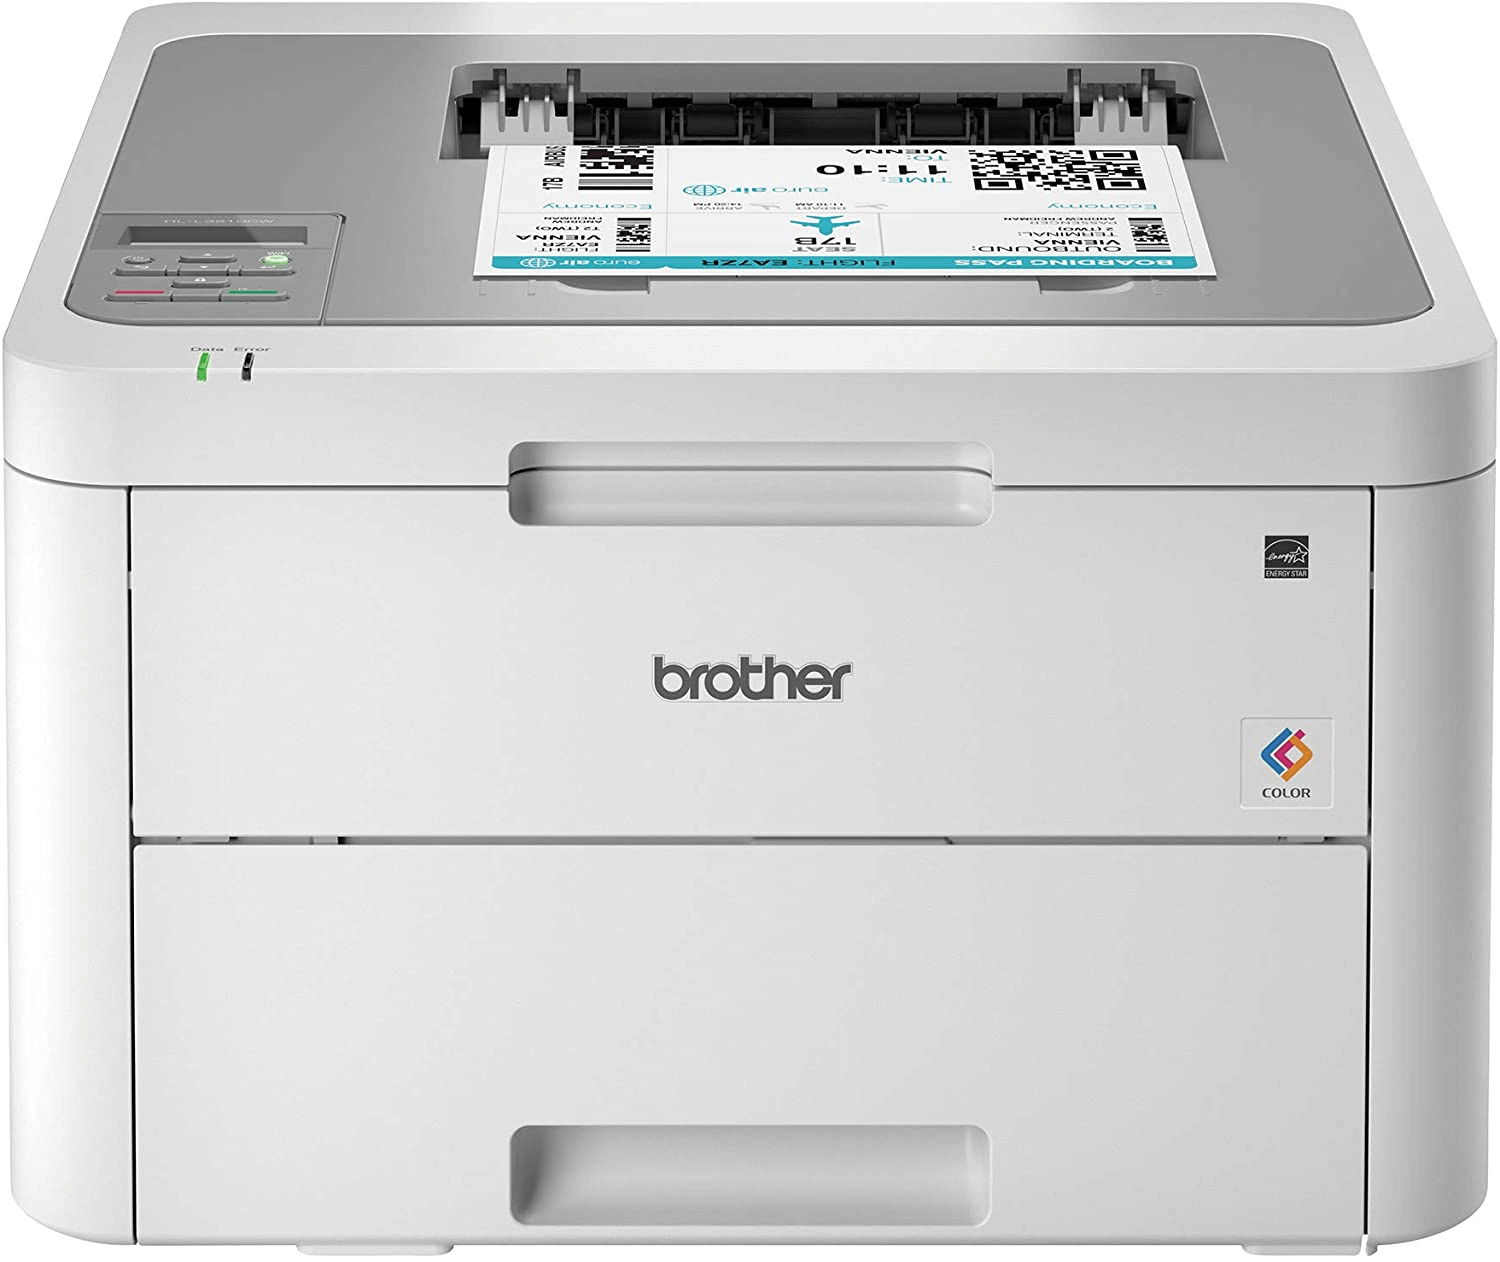 Brother HL-L3210CW Compact Digital Color Printer